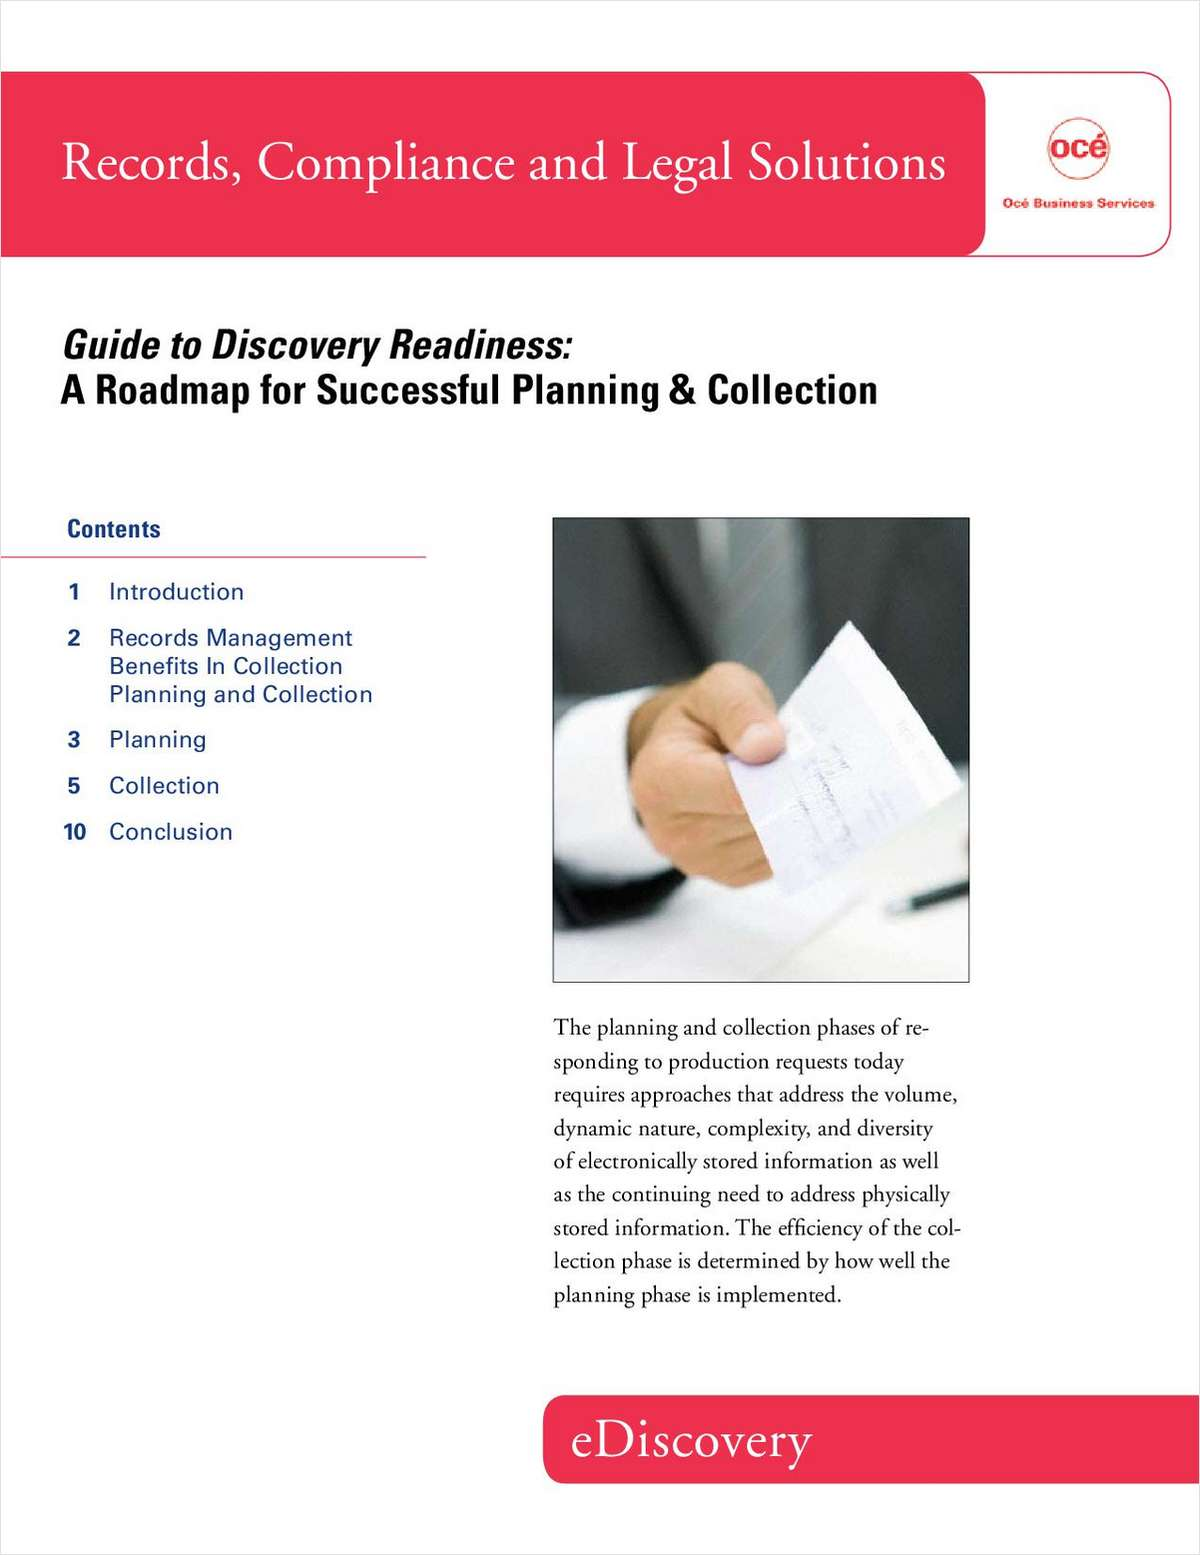 Discovery Readiness: A Roadmap for Successful Planning and Collection